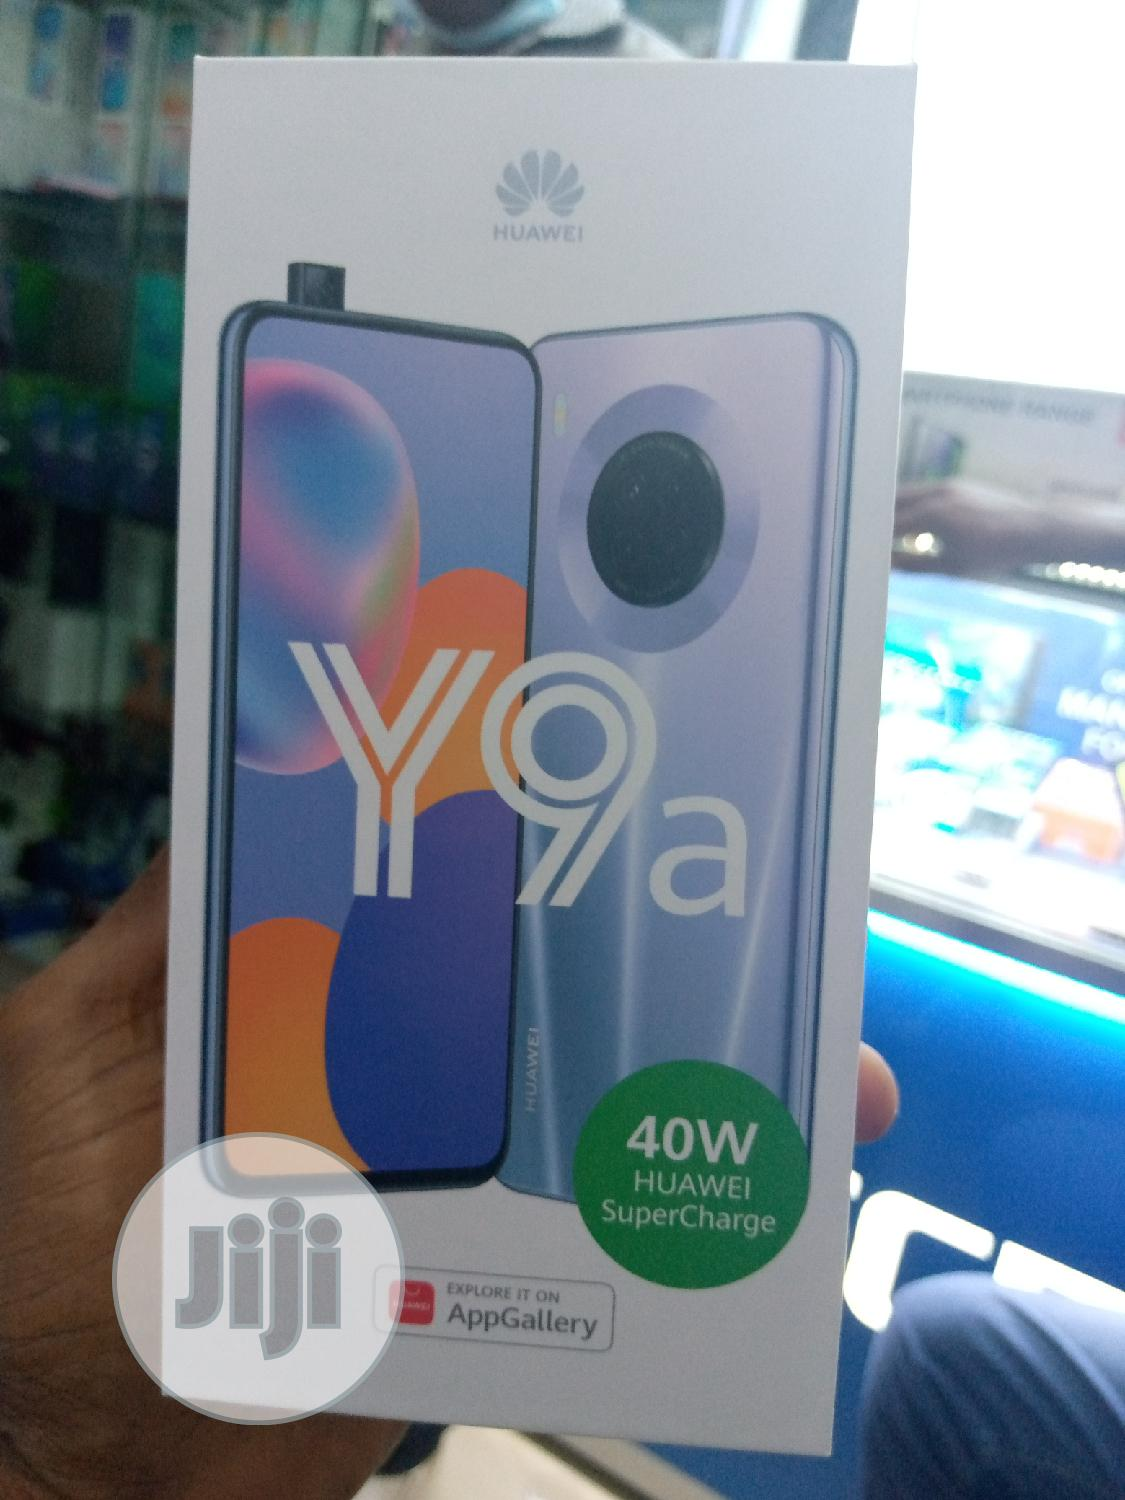 New Huawei Y9a 128GB Pink